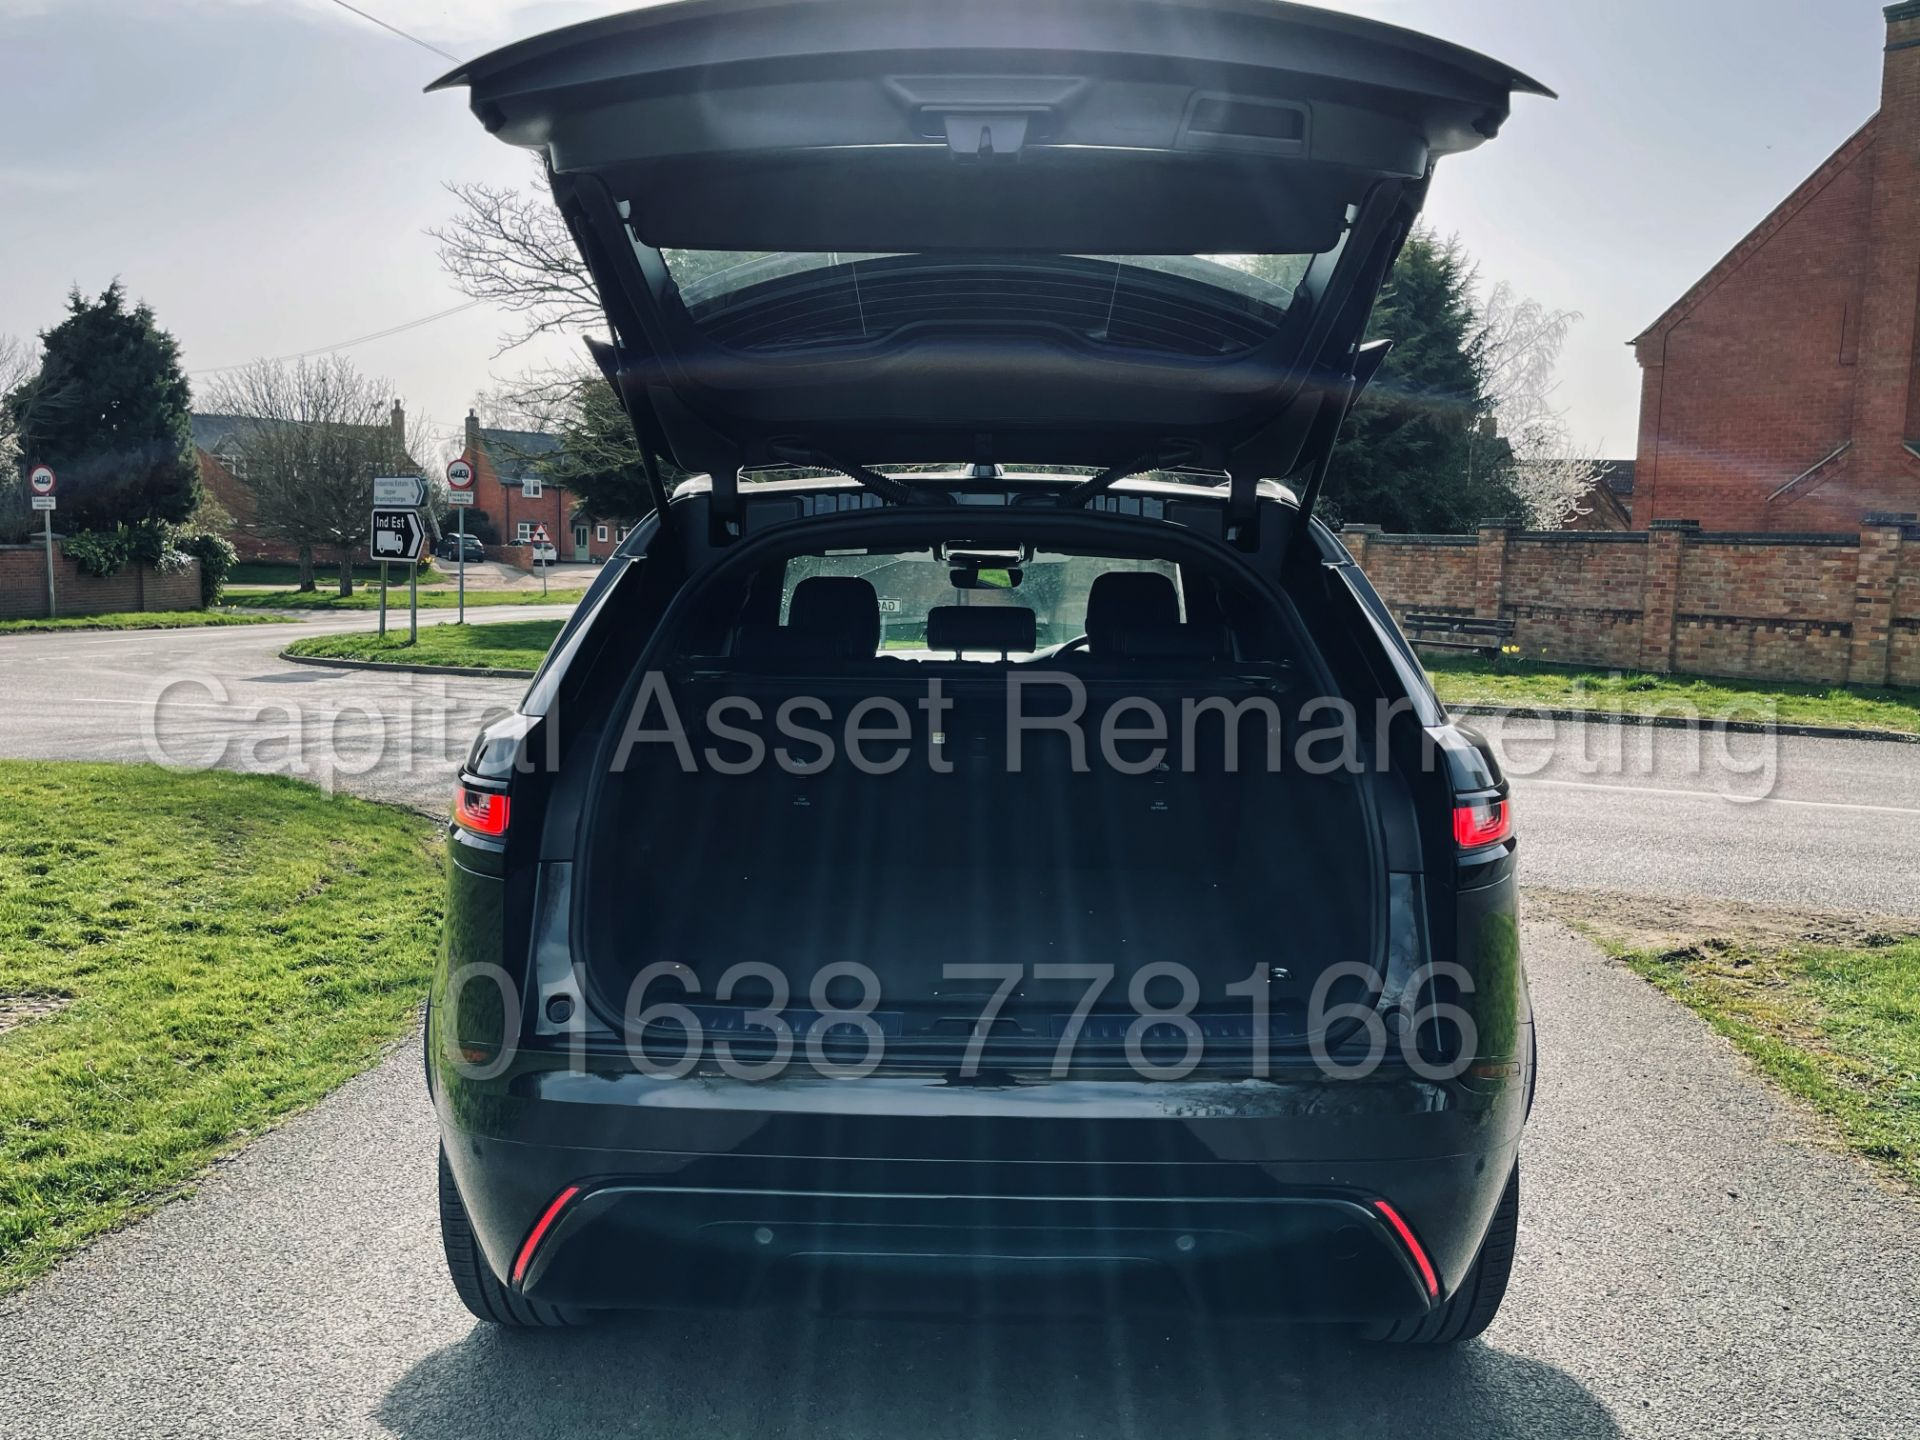 (On Sale) RANGE ROVER VELAR *R-DYNAMIC* SUV (2021) *8 SPEED AUTO - LEATHER* (DELIVERY MILES) - Image 28 of 50